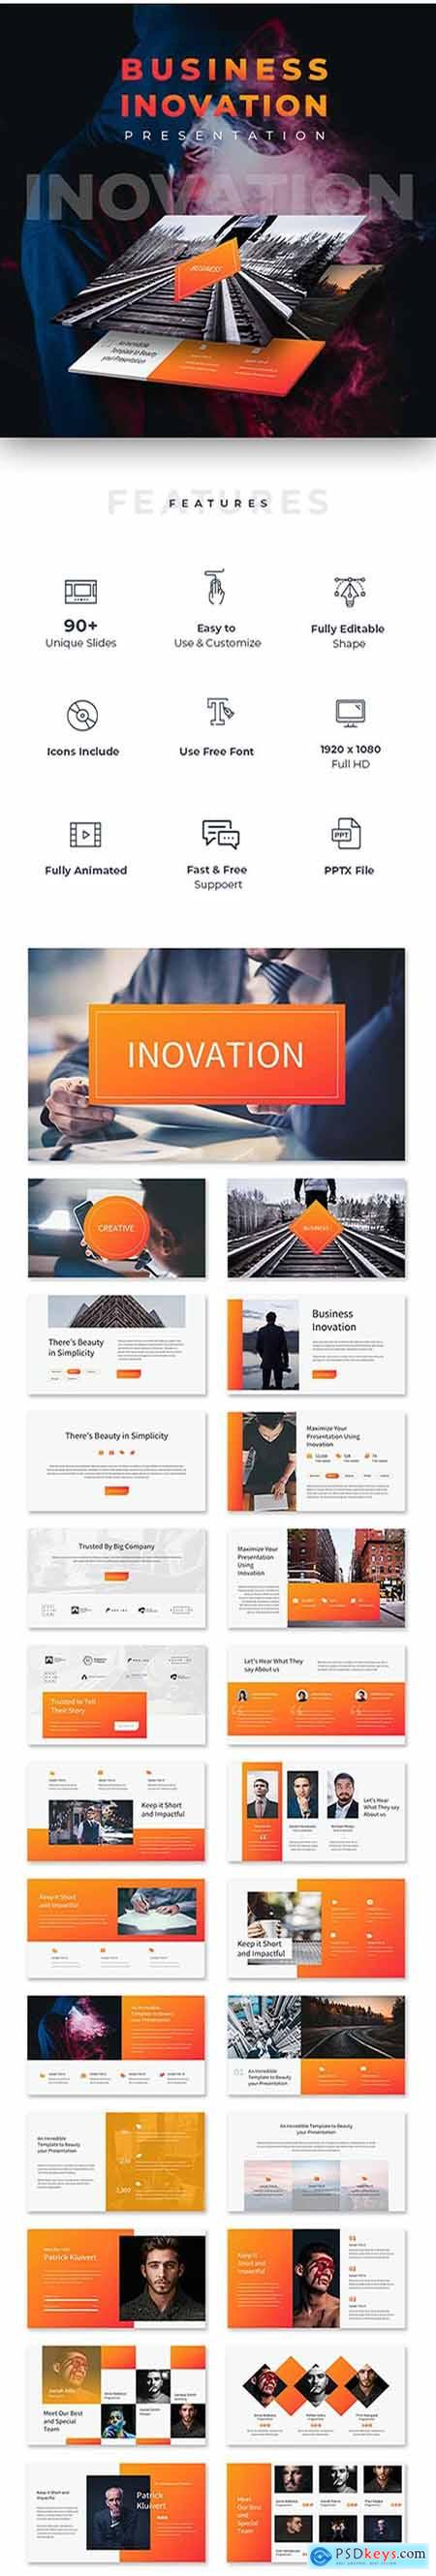 Business Inovation Powerpoint Template 22919959